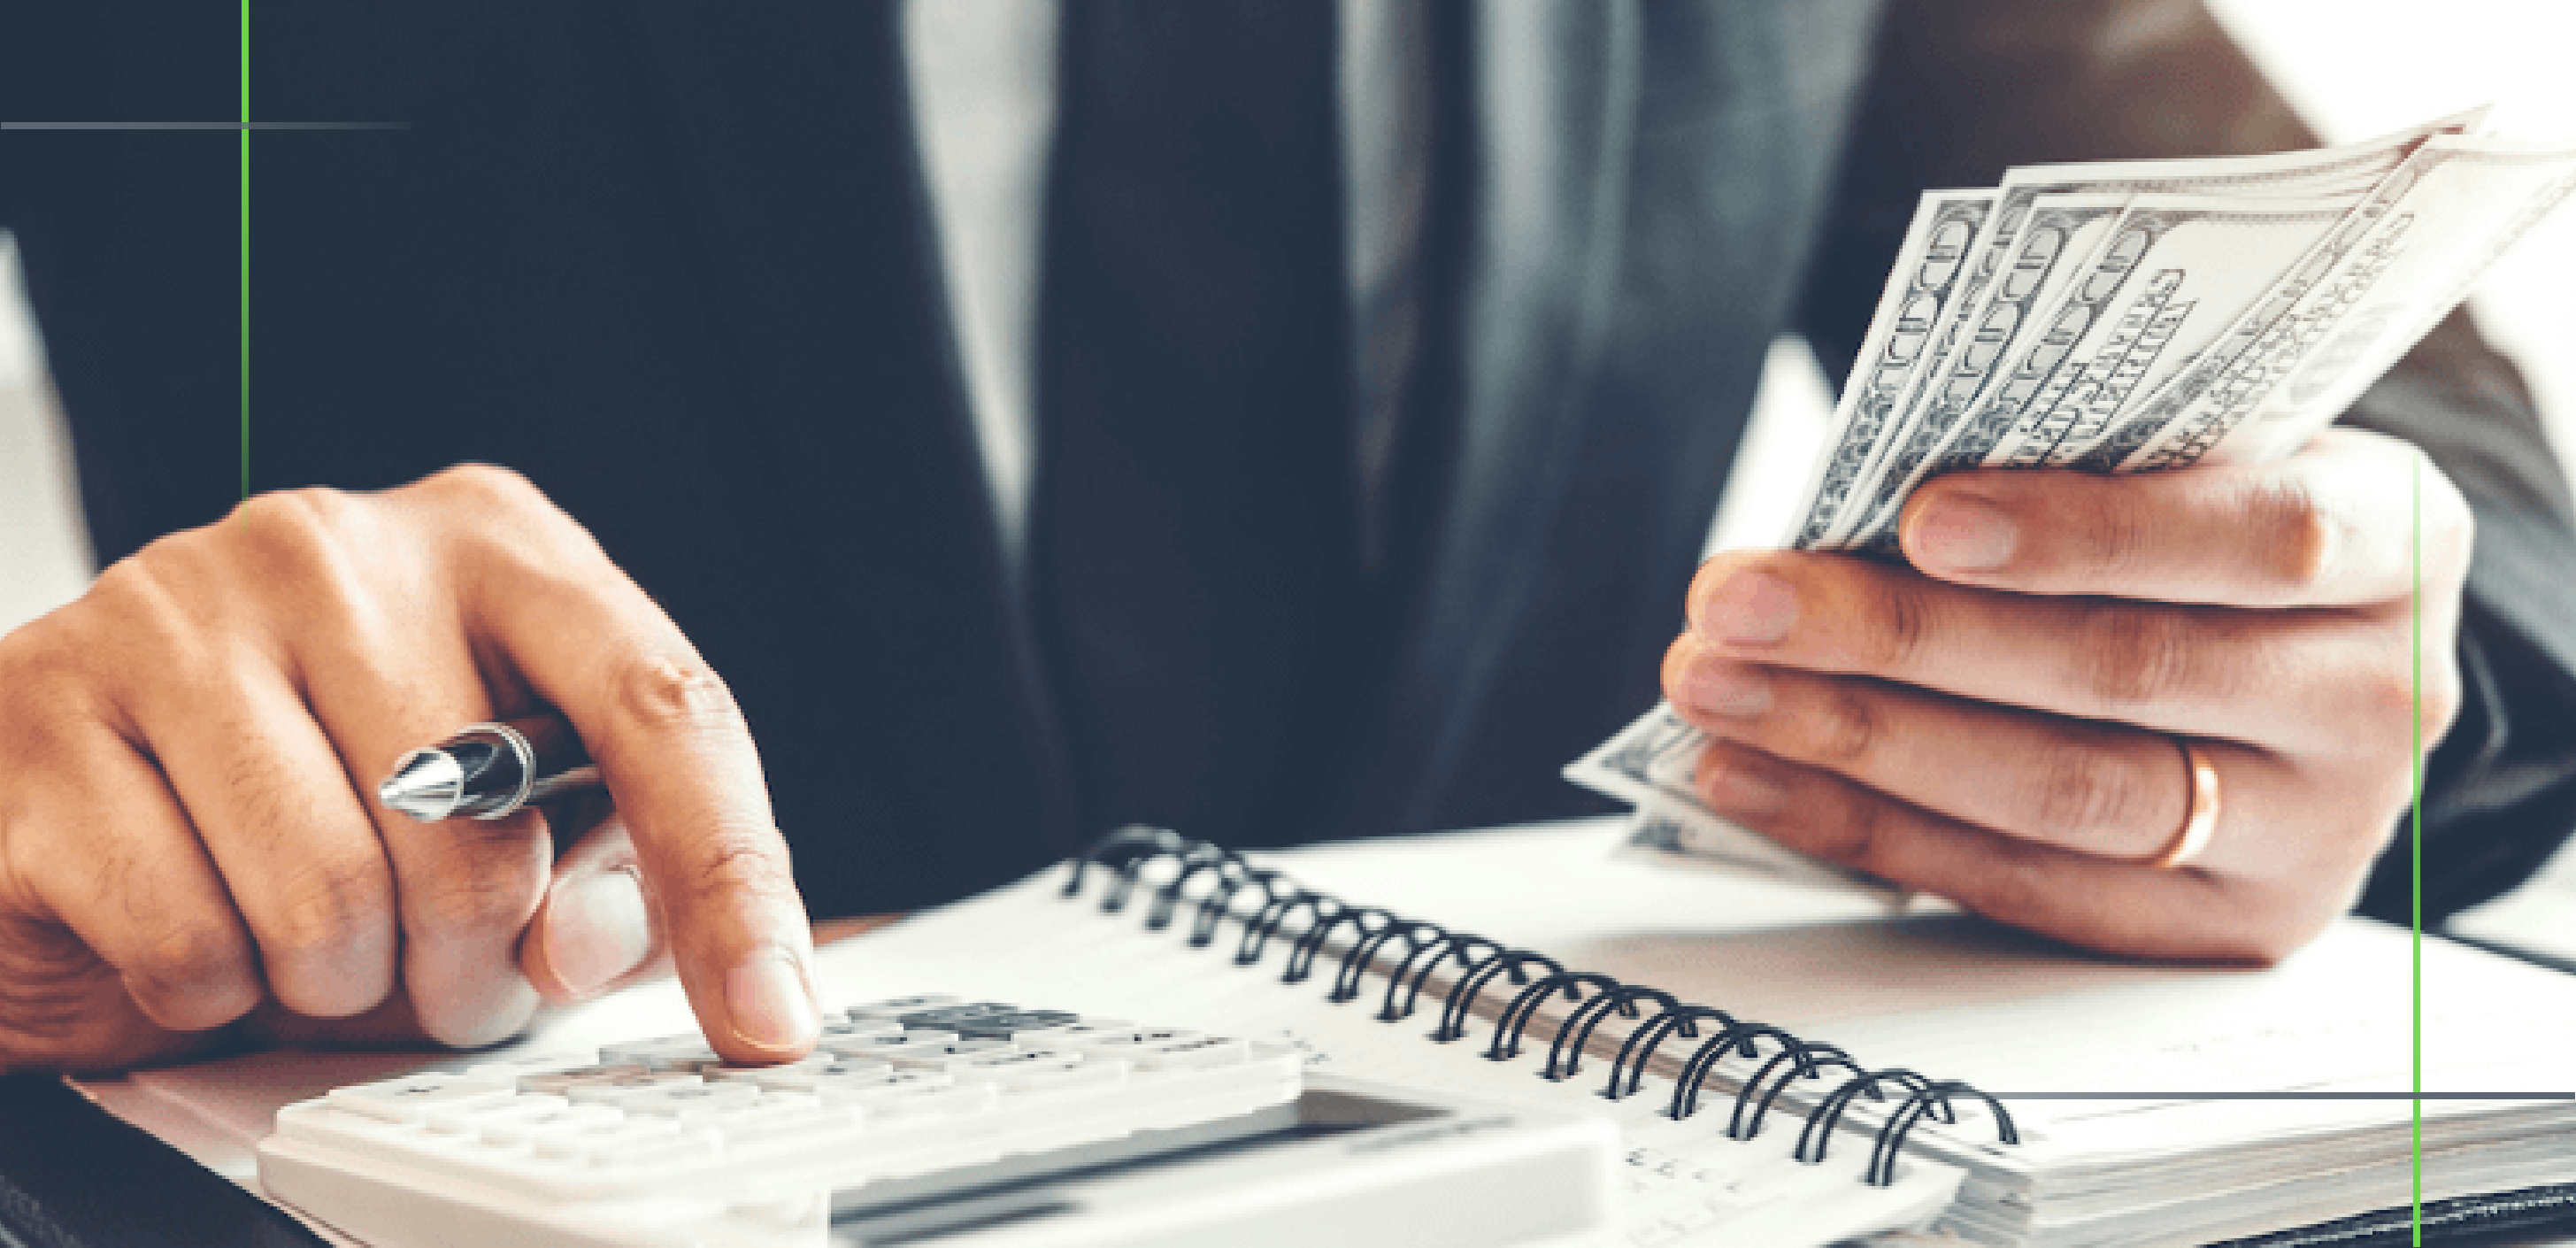 3 Reasons Your Salary Growth Can Become Stagnant